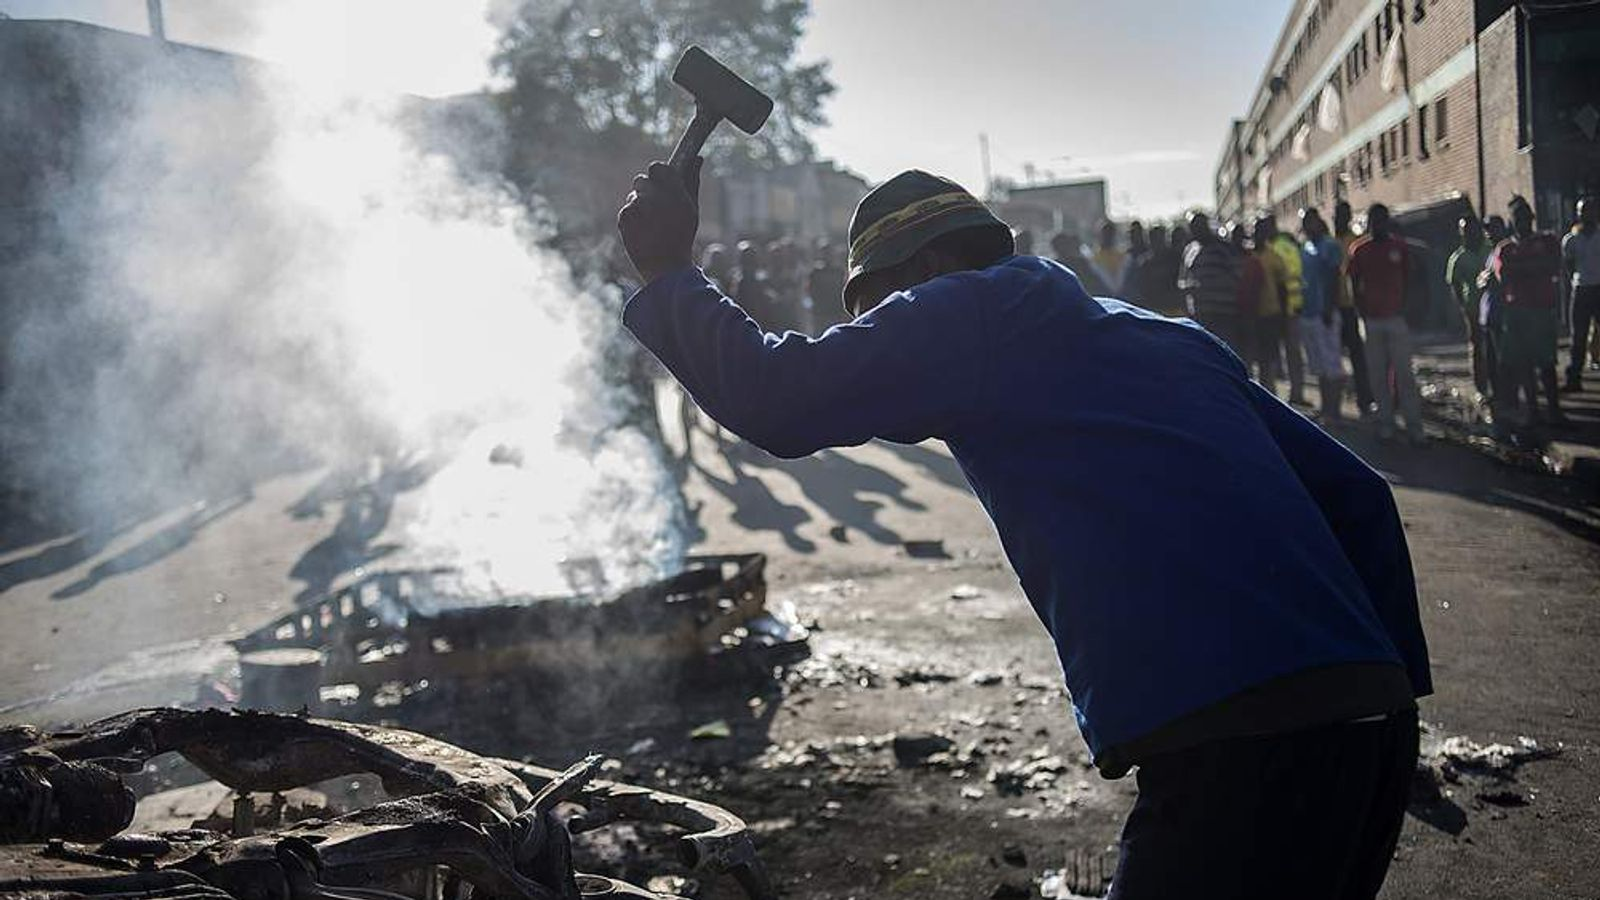 A man retrieves metal scraps from a burnt-out car